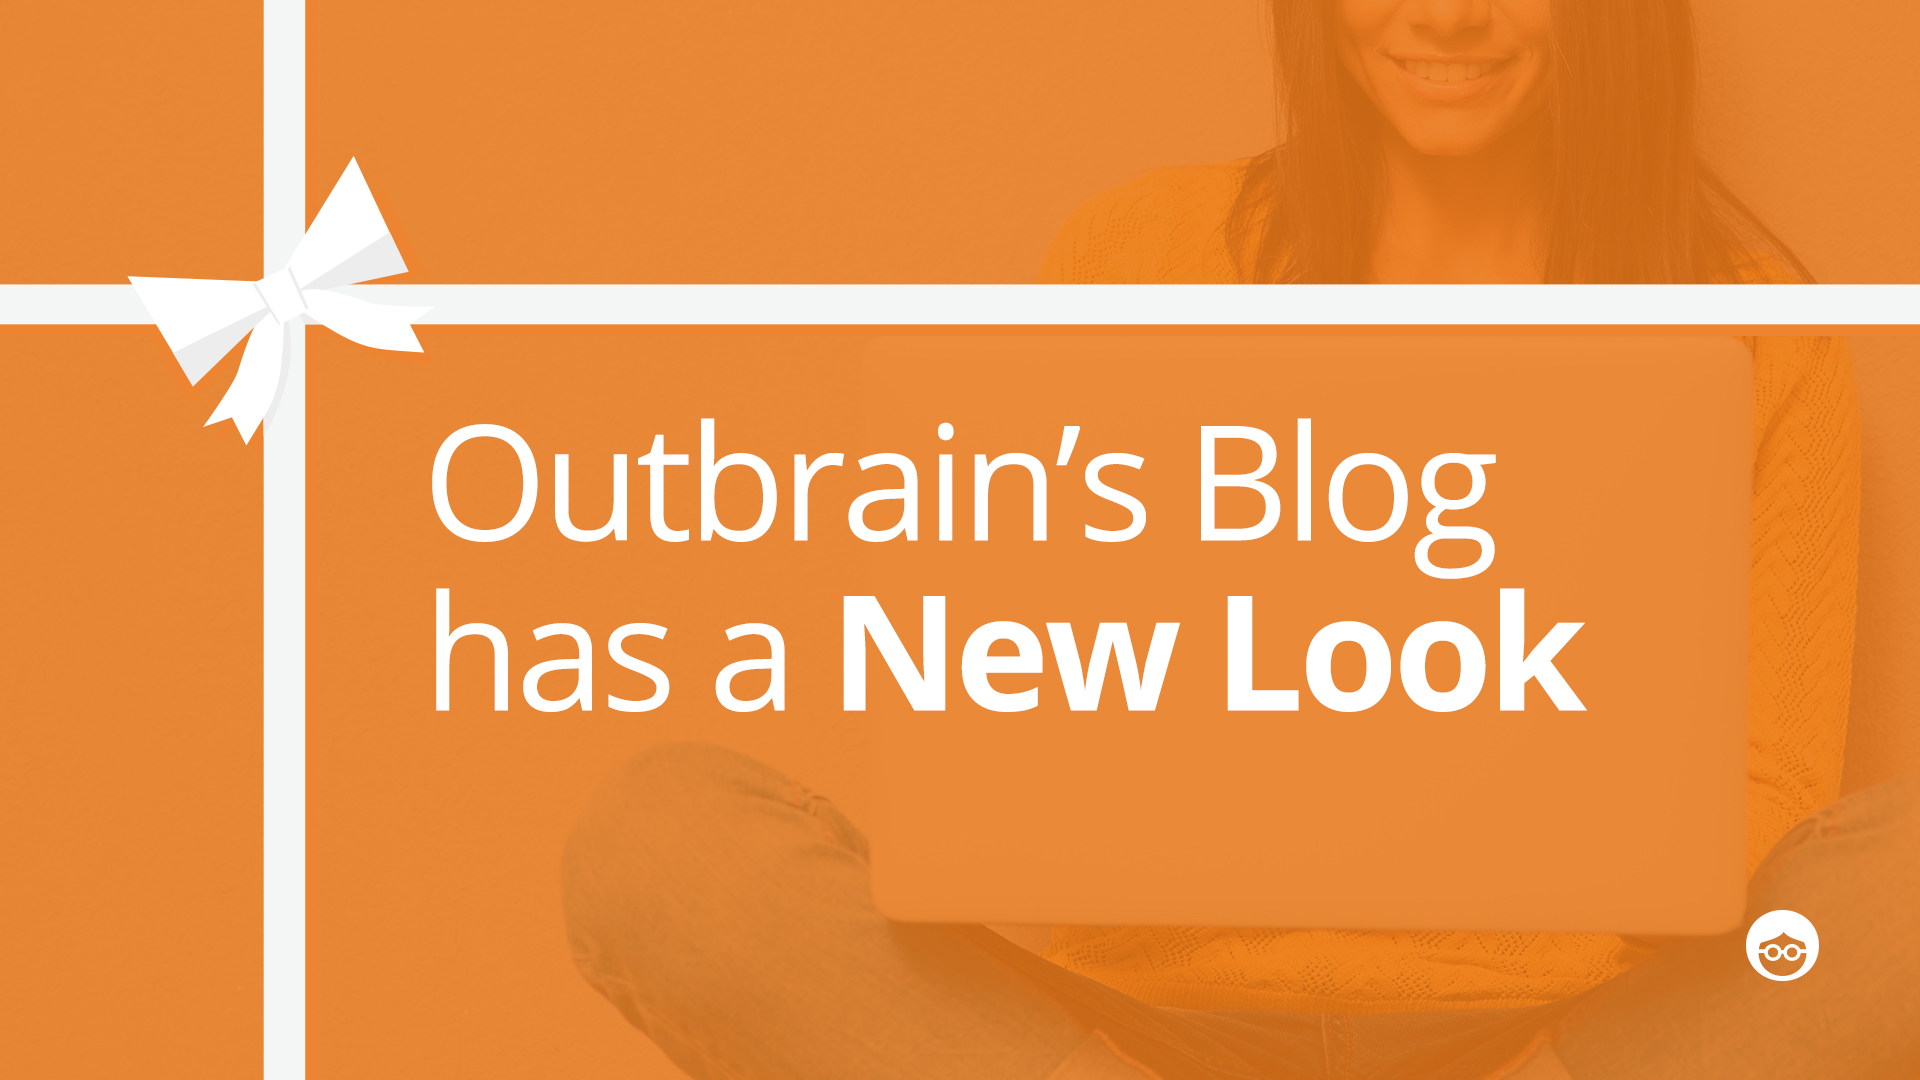 Outbrain Blog- Marketers and Publishers Resources